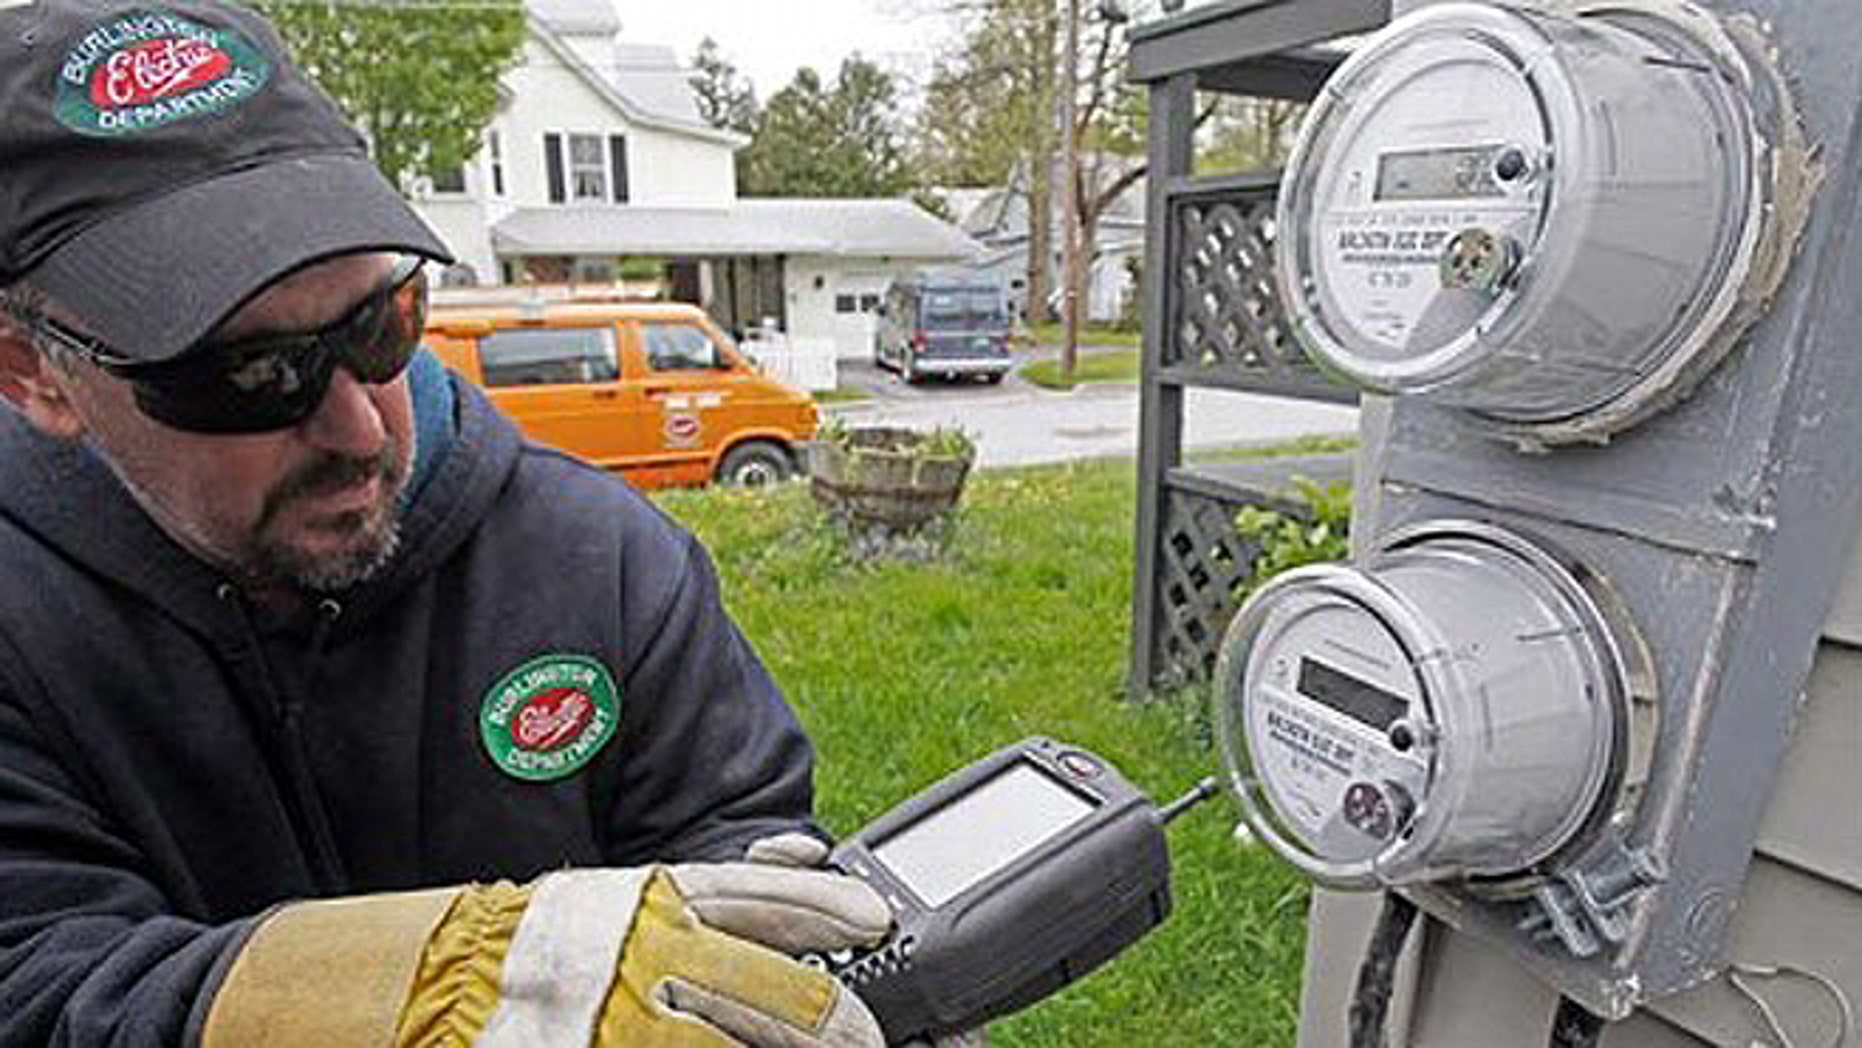 Utility companies across the country are have been steadily launching initiatives to install smart meters at customers homes, but many have protested, saying that it infringes on their privacy rights and may even cause health issues.